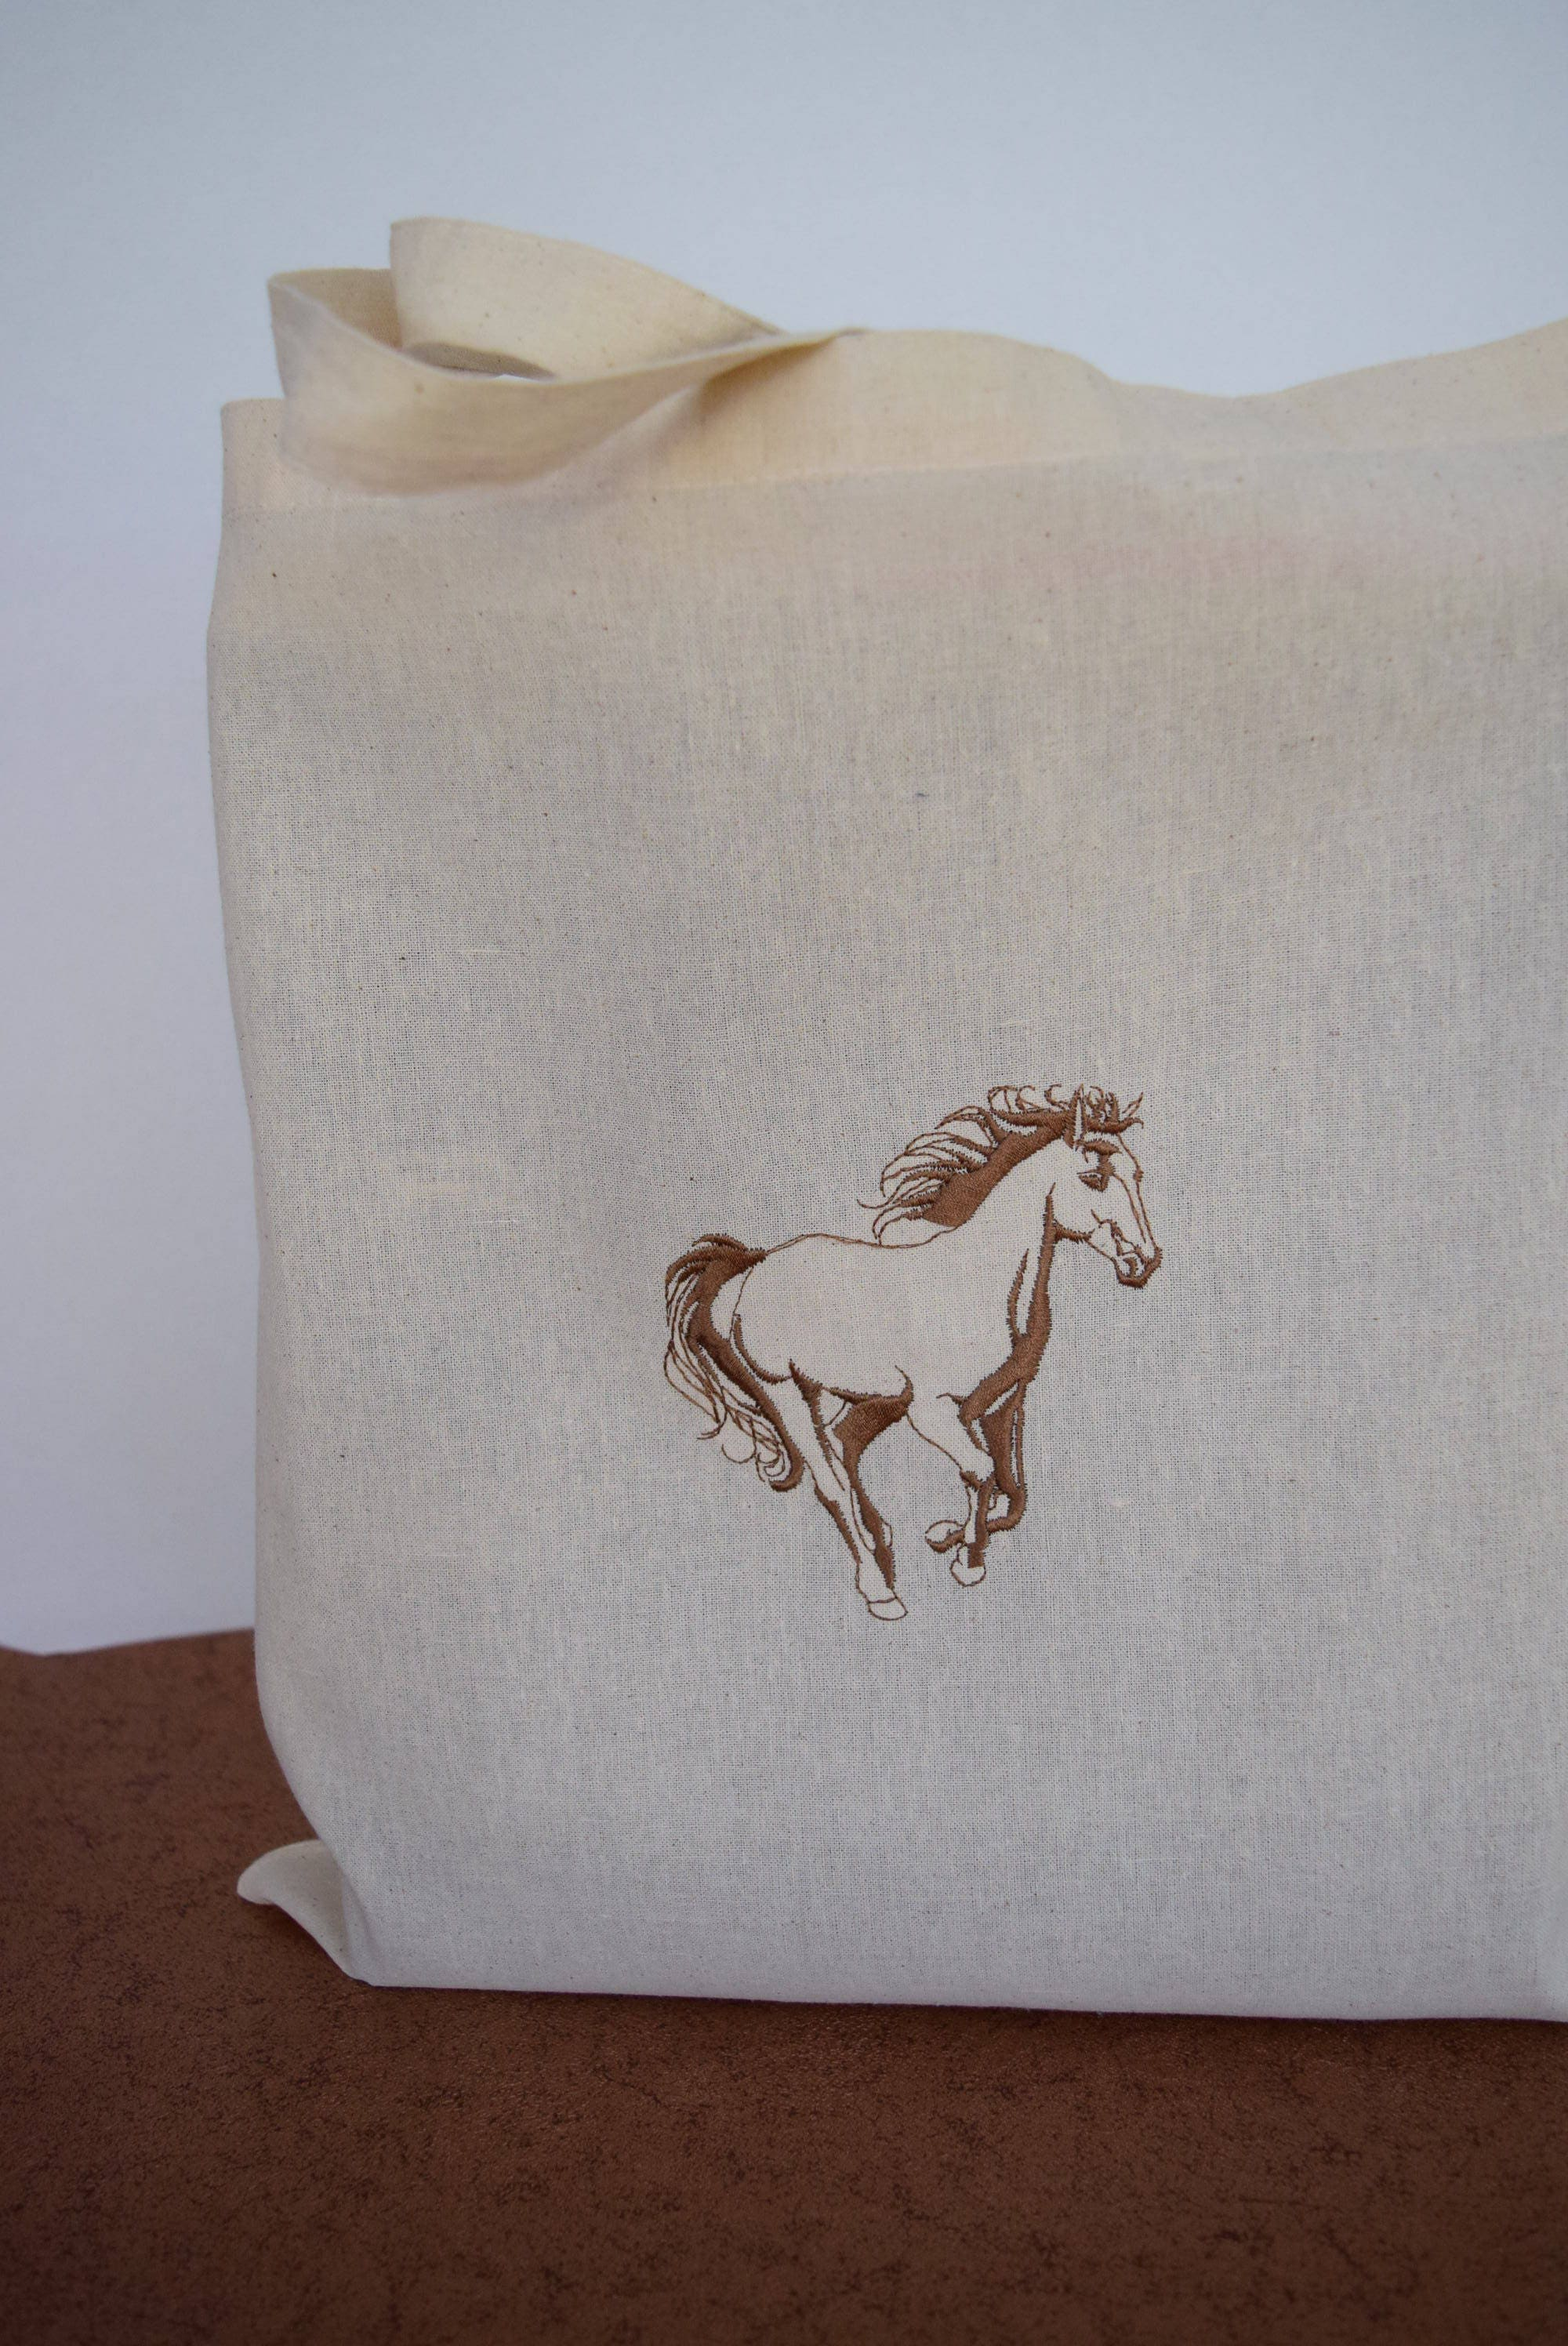 Horse Lovers Shopping Bag Reusable Lightweight Personalized Tote Foldable Grocery Embroidered Bags Eco Friendly Recycled Cotton Cloth Bag